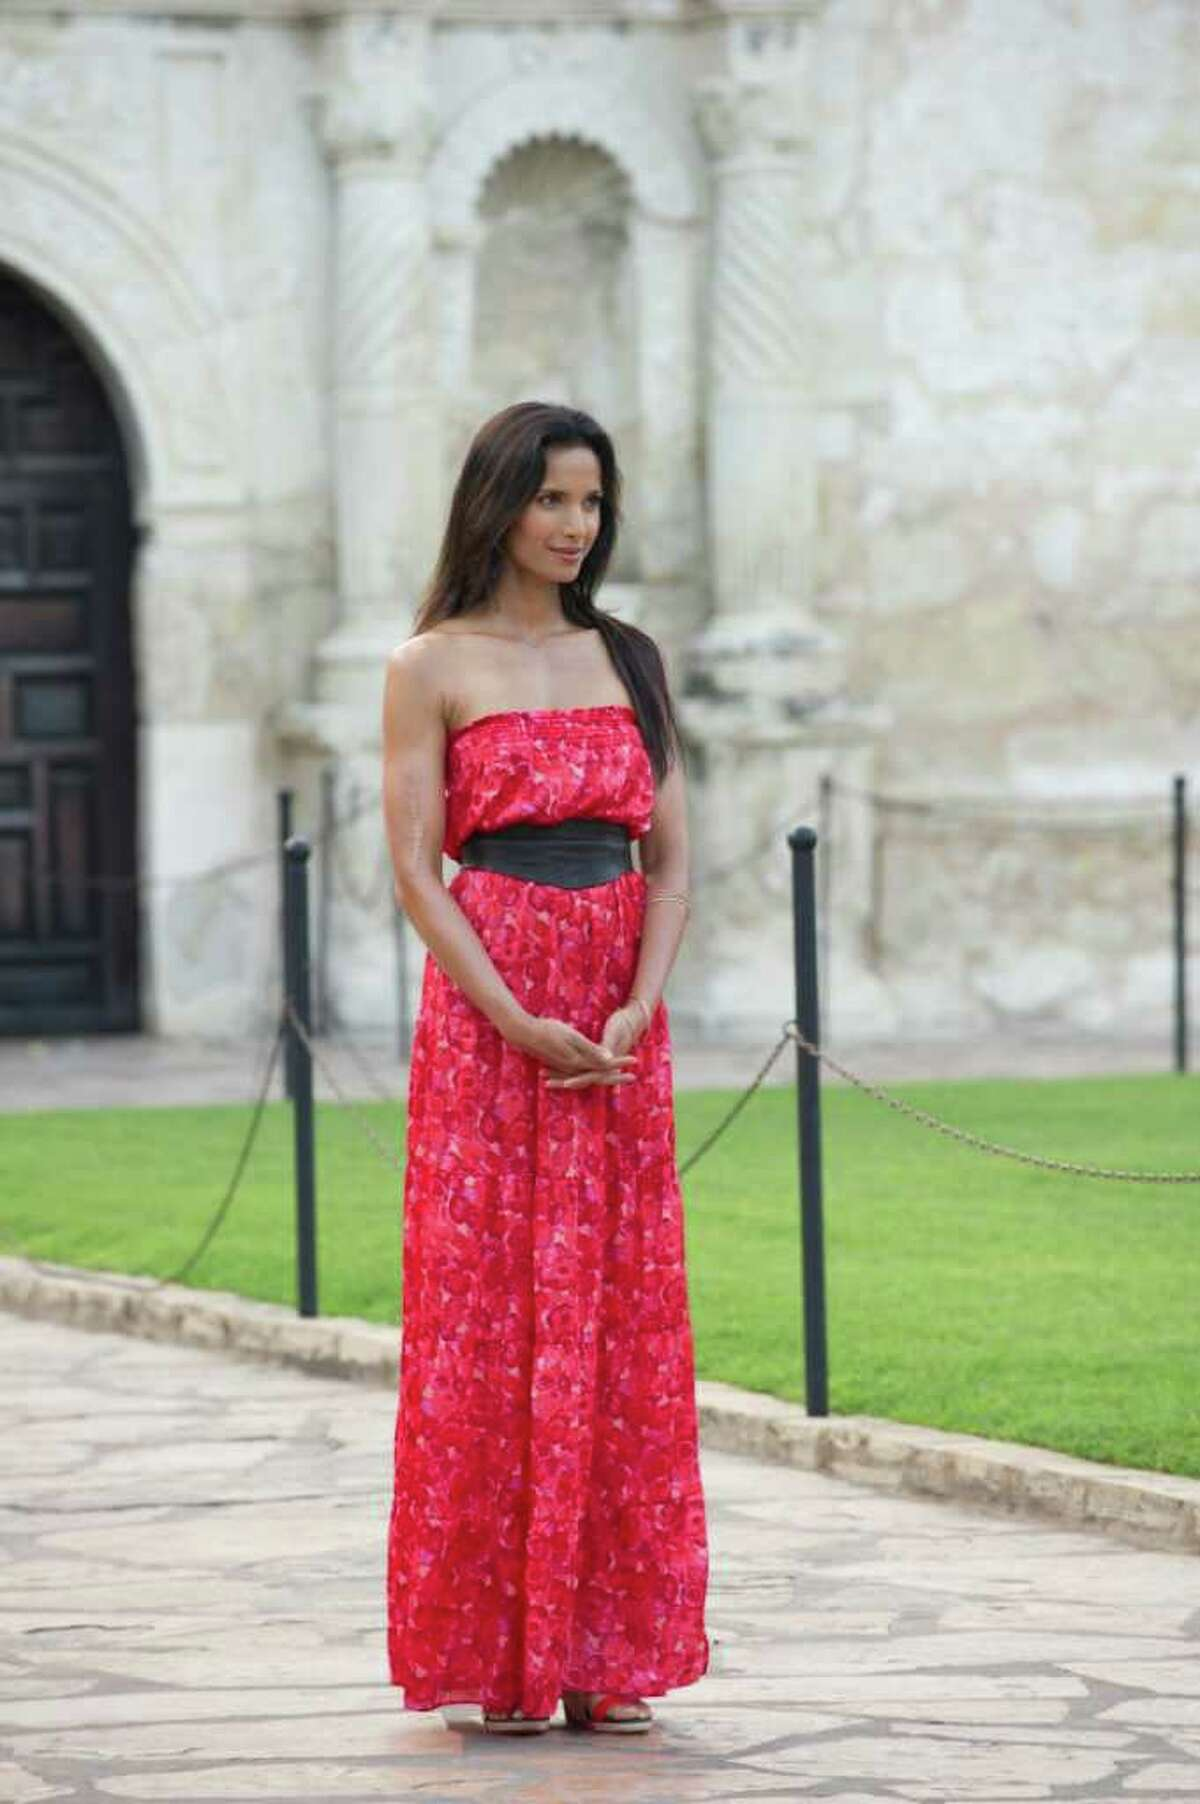 Top Chef: Texas host Padma Lakshmi speaks fondly of her summer visit to San Antonio with co-hose Tom Calicchio.